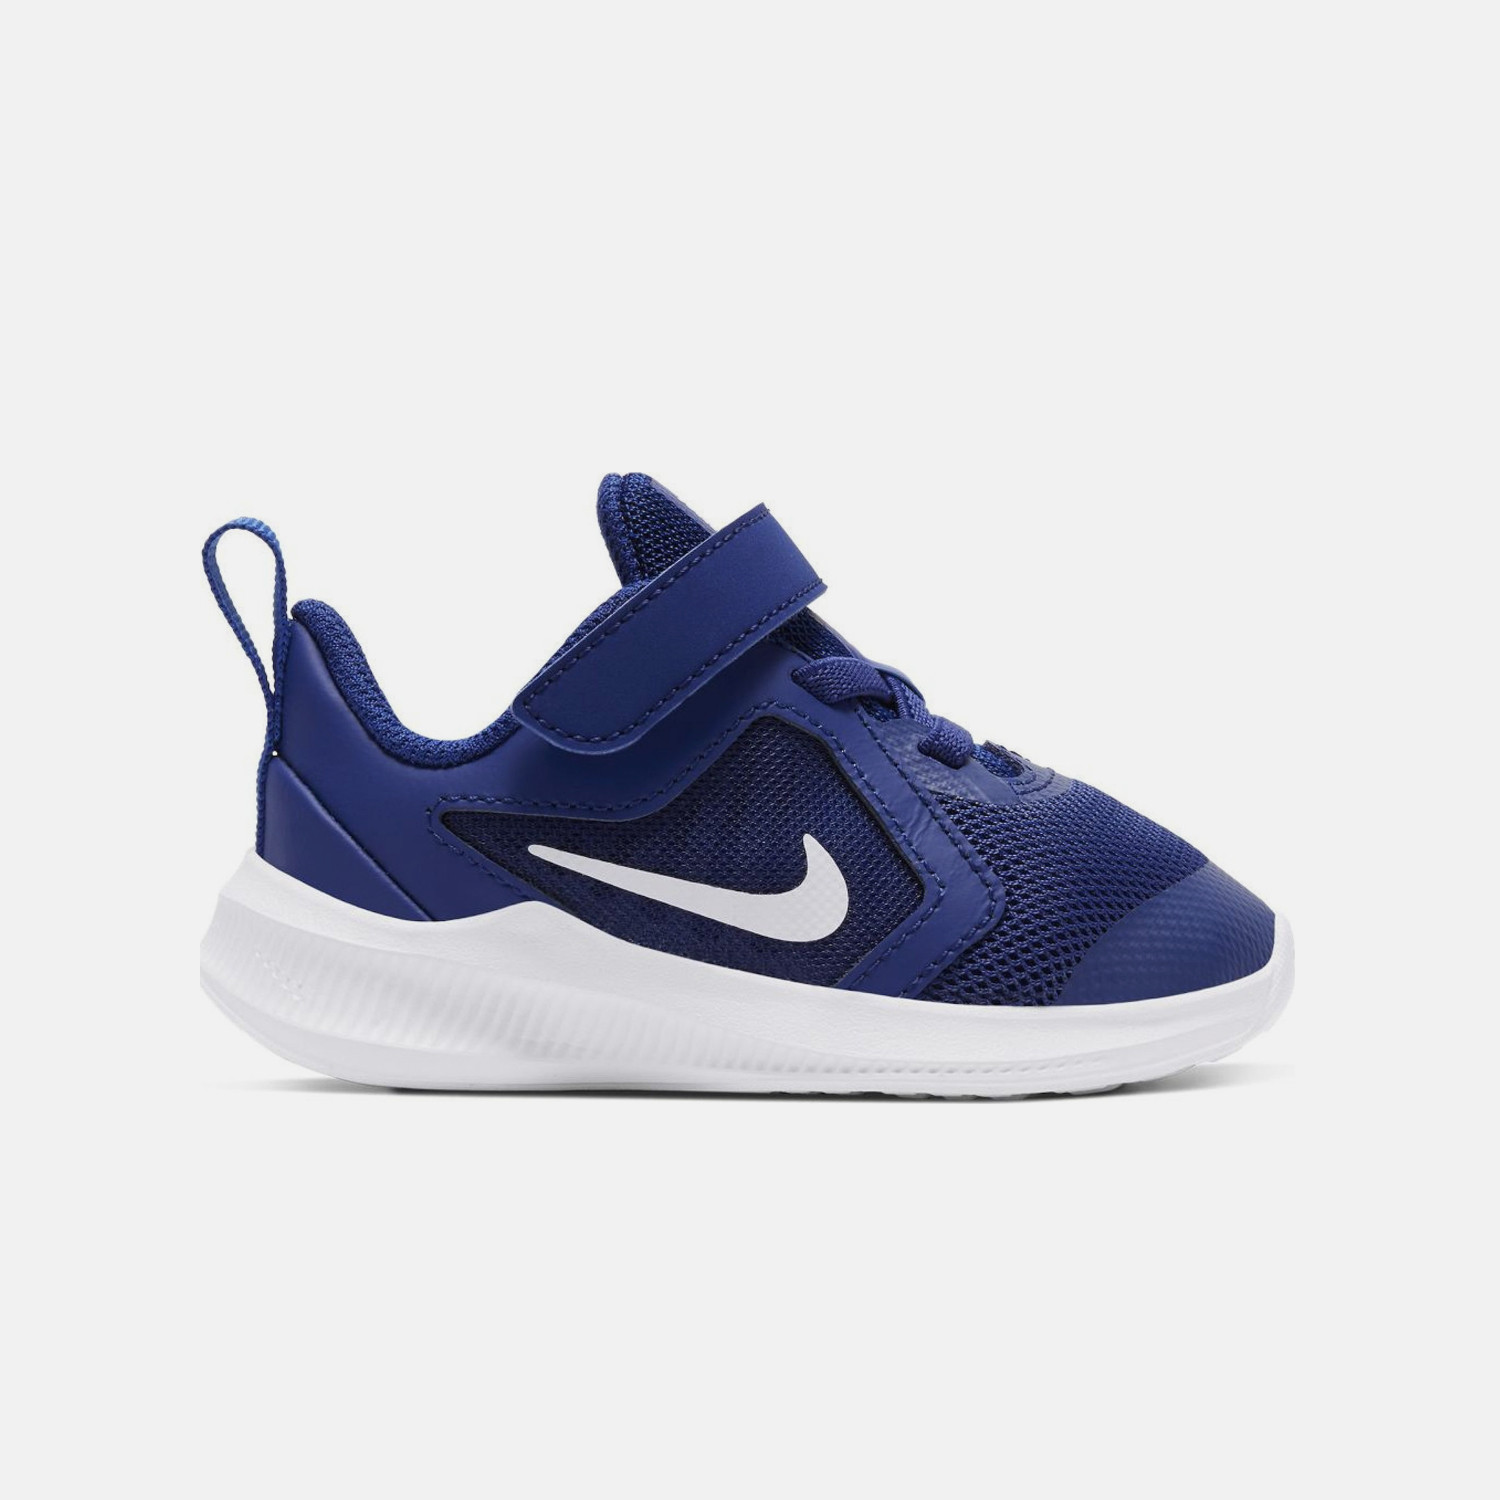 Nike Downshifter 10 Βρεφικά Παπούτσια (9000061385_48304)